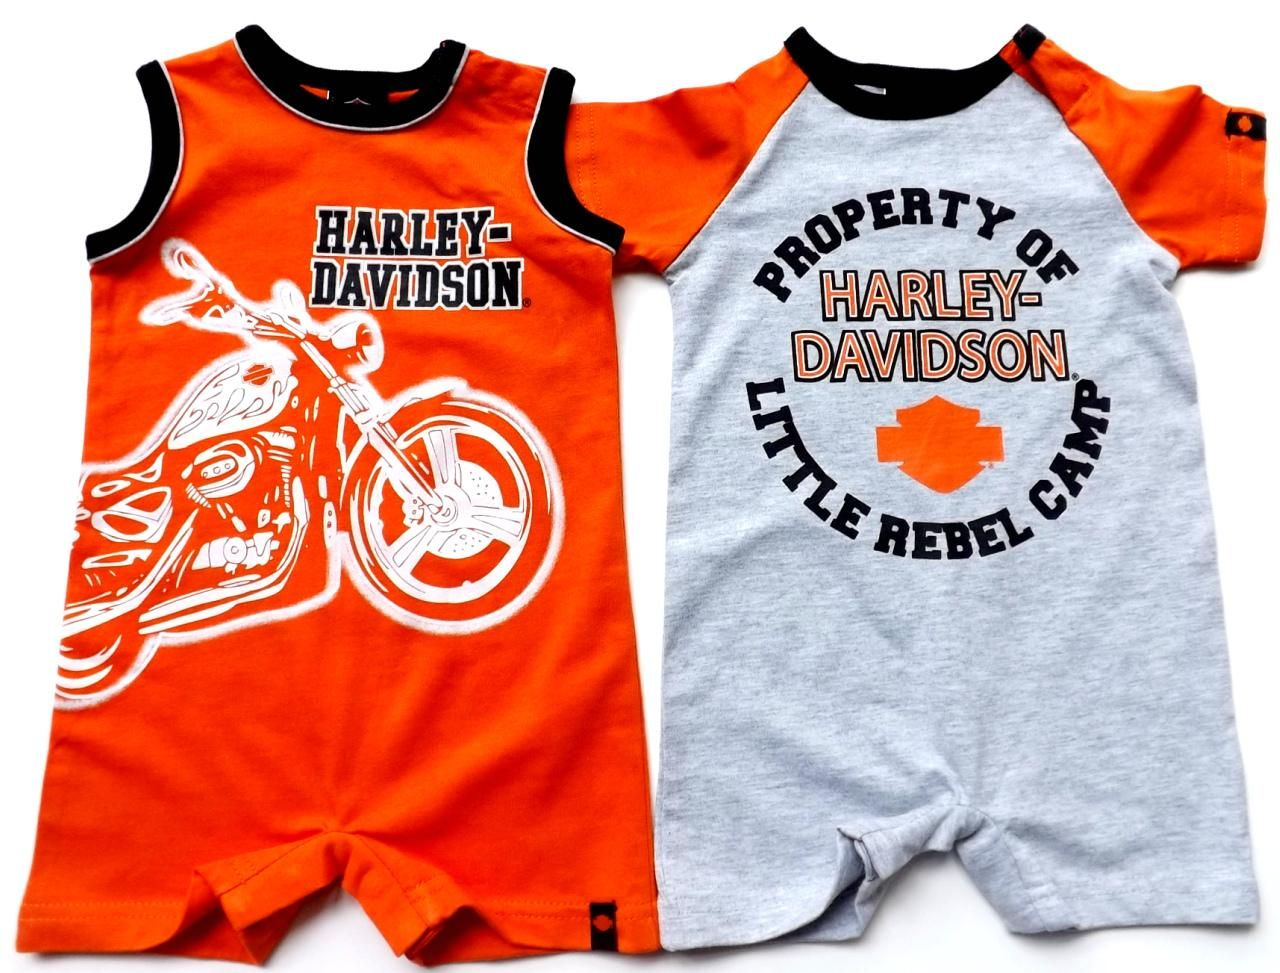 Harley Davidson Infant Clothing Children S Fashion Baby Baby